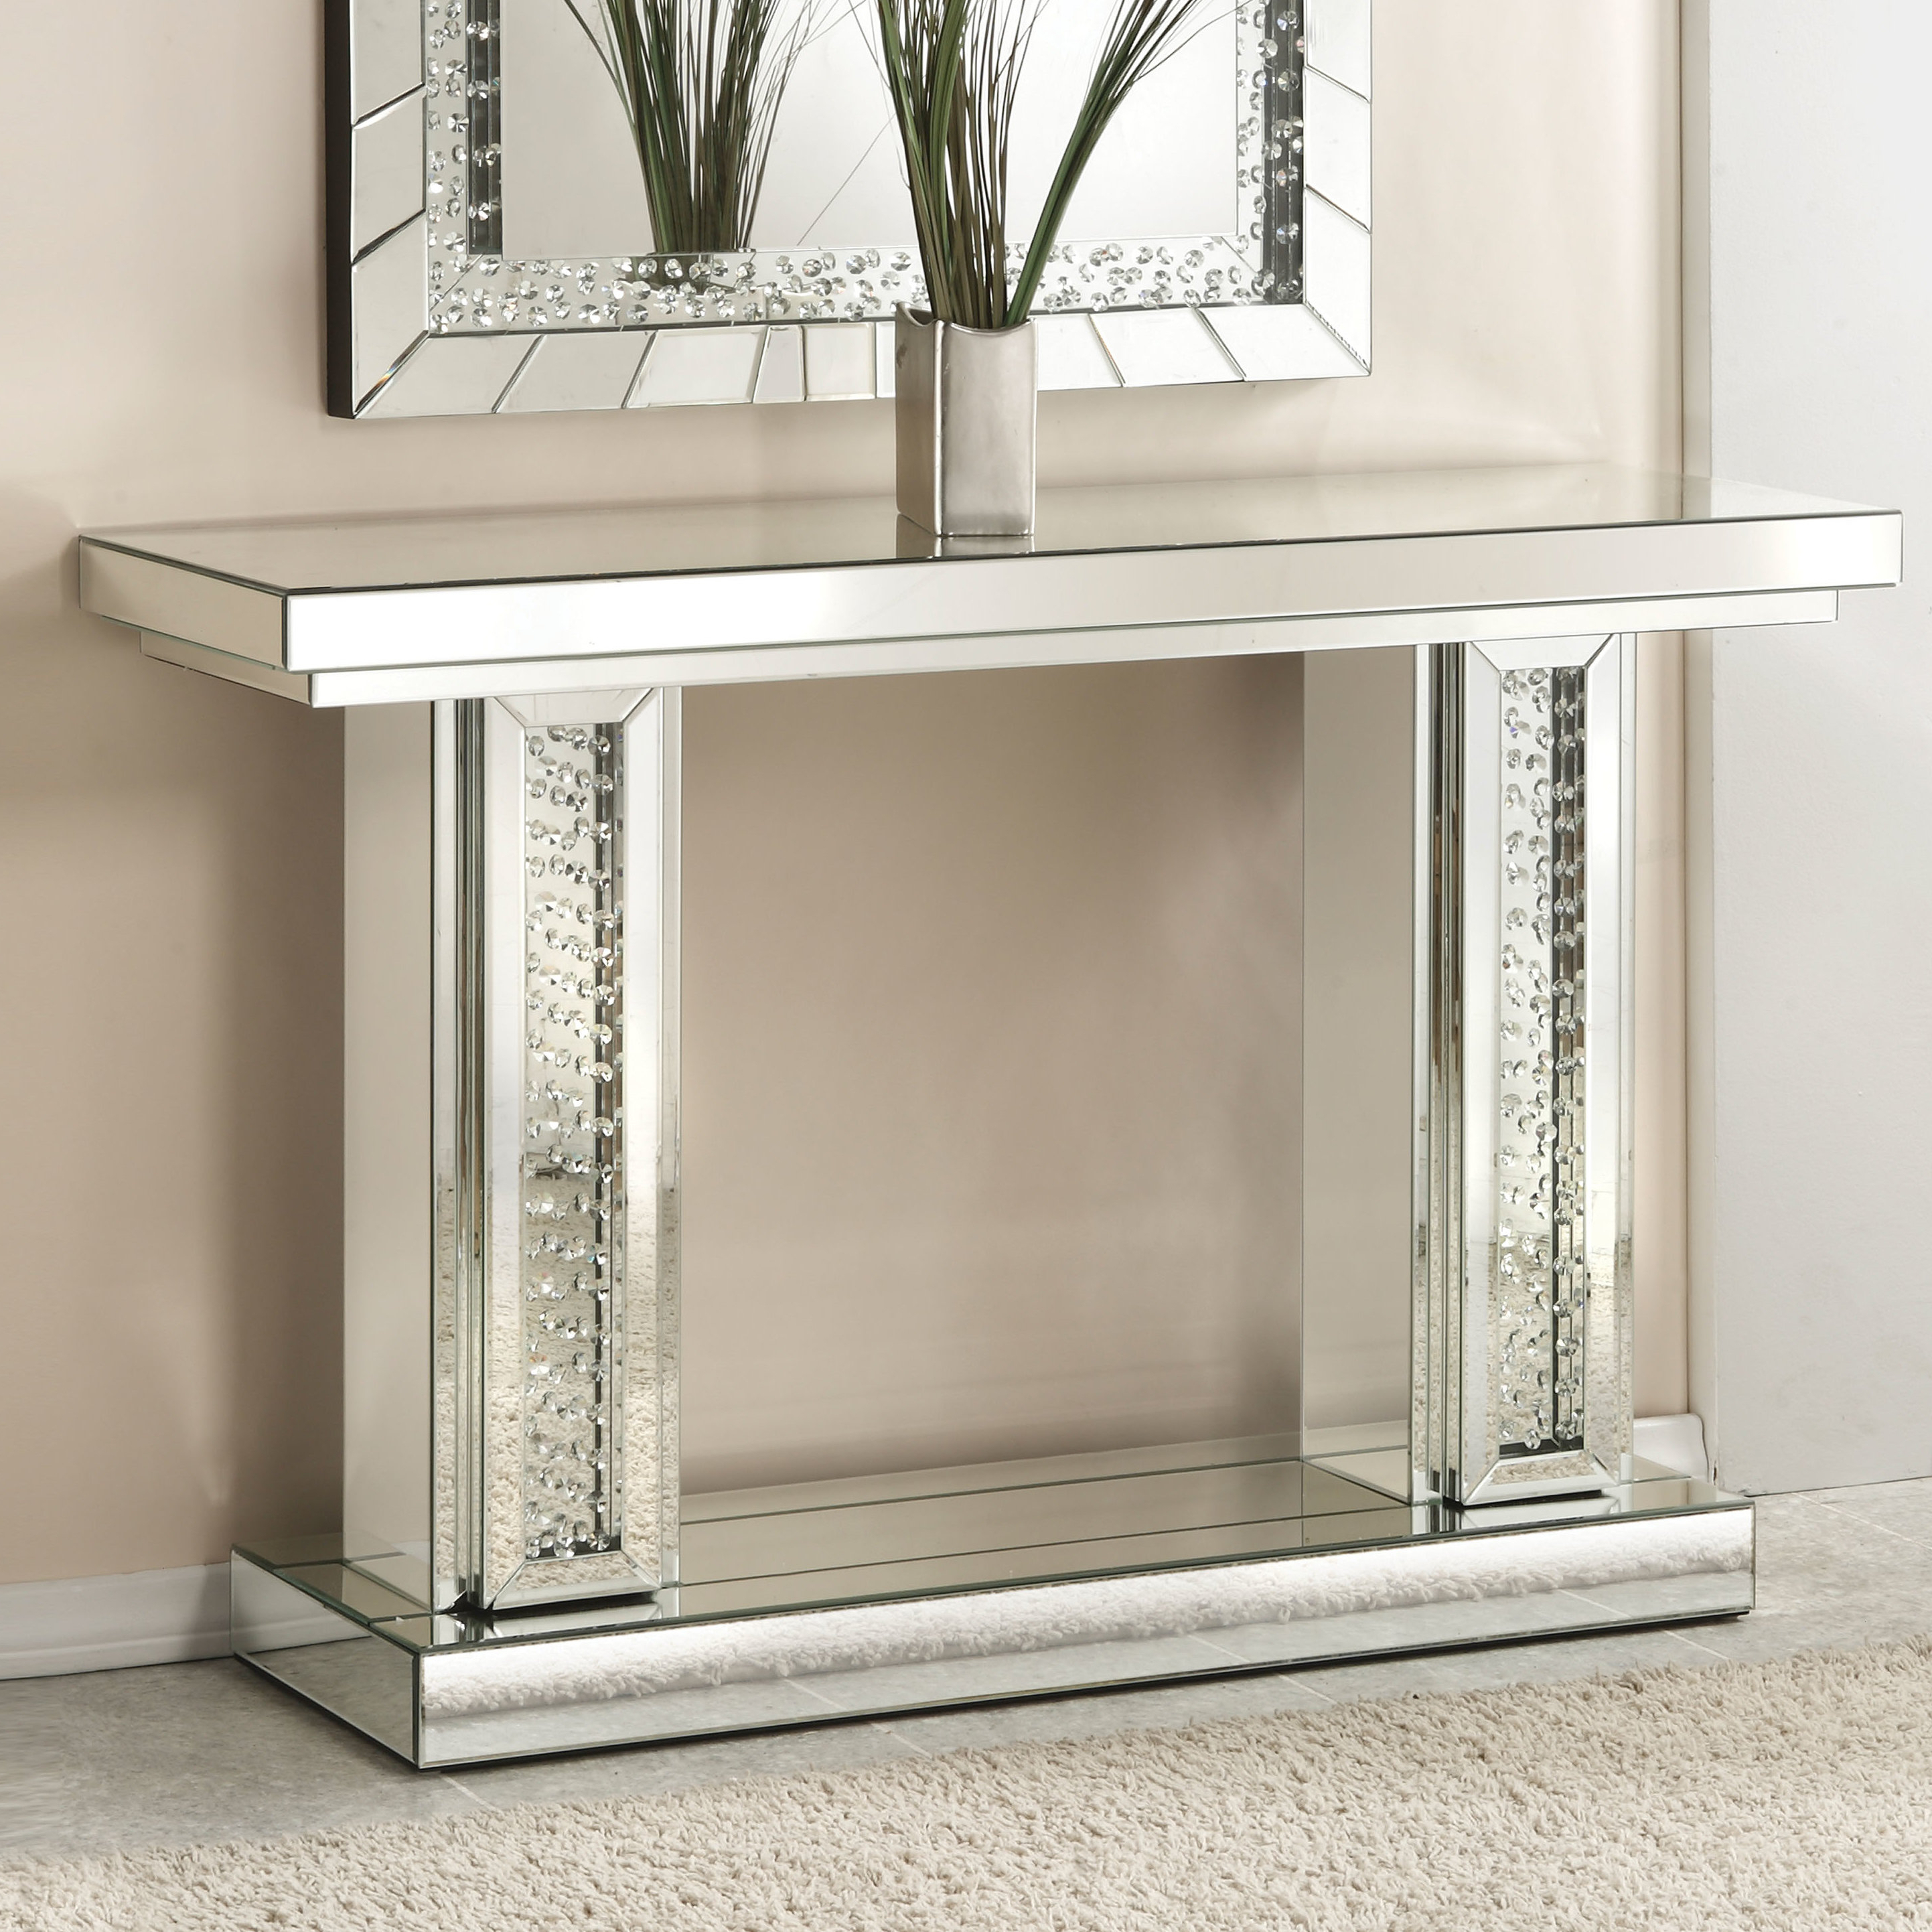 Well Known Natural Wood Mirrored Media Console Tables Within Mirrored Console Tables You'll Love (Gallery 20 of 20)